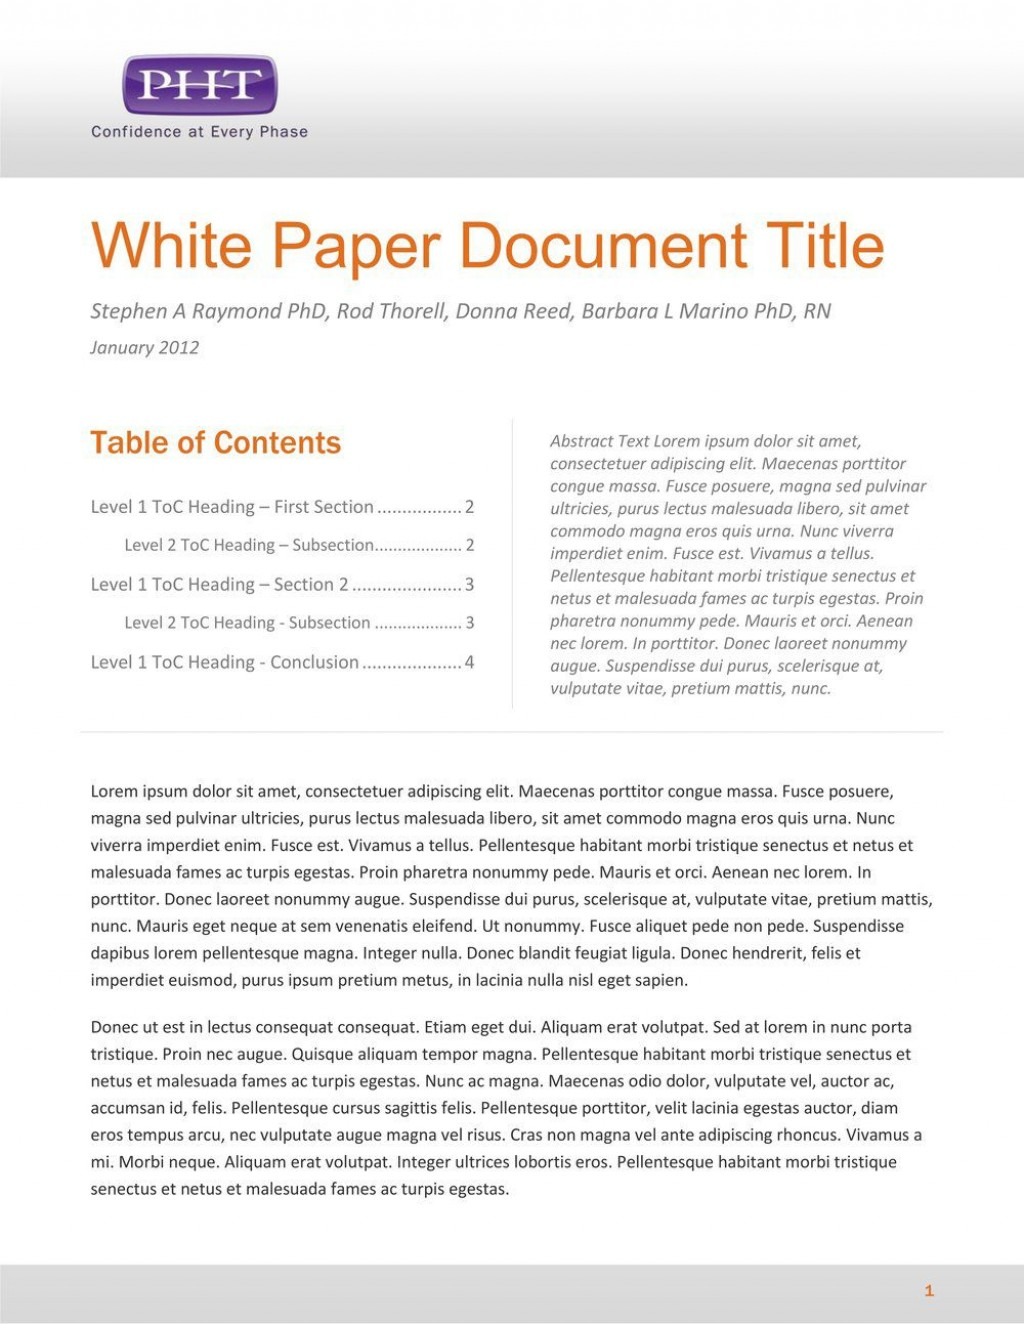 005 Simple White Paper Outline Sample Idea Large